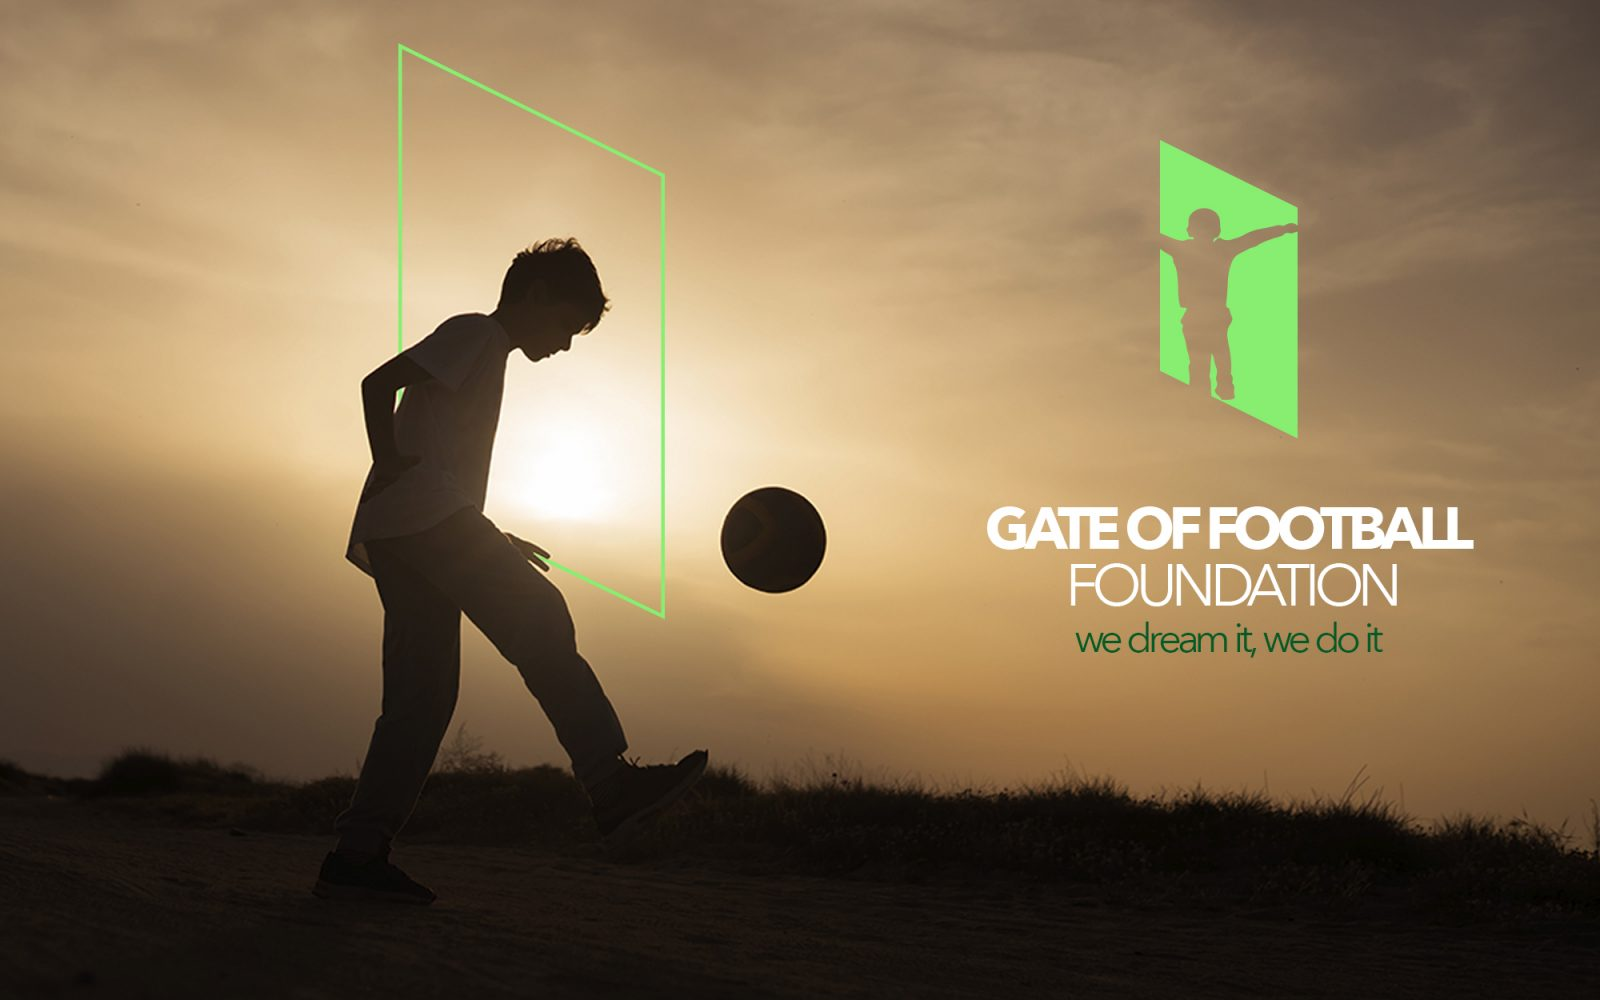 Gate of Football - Restyling